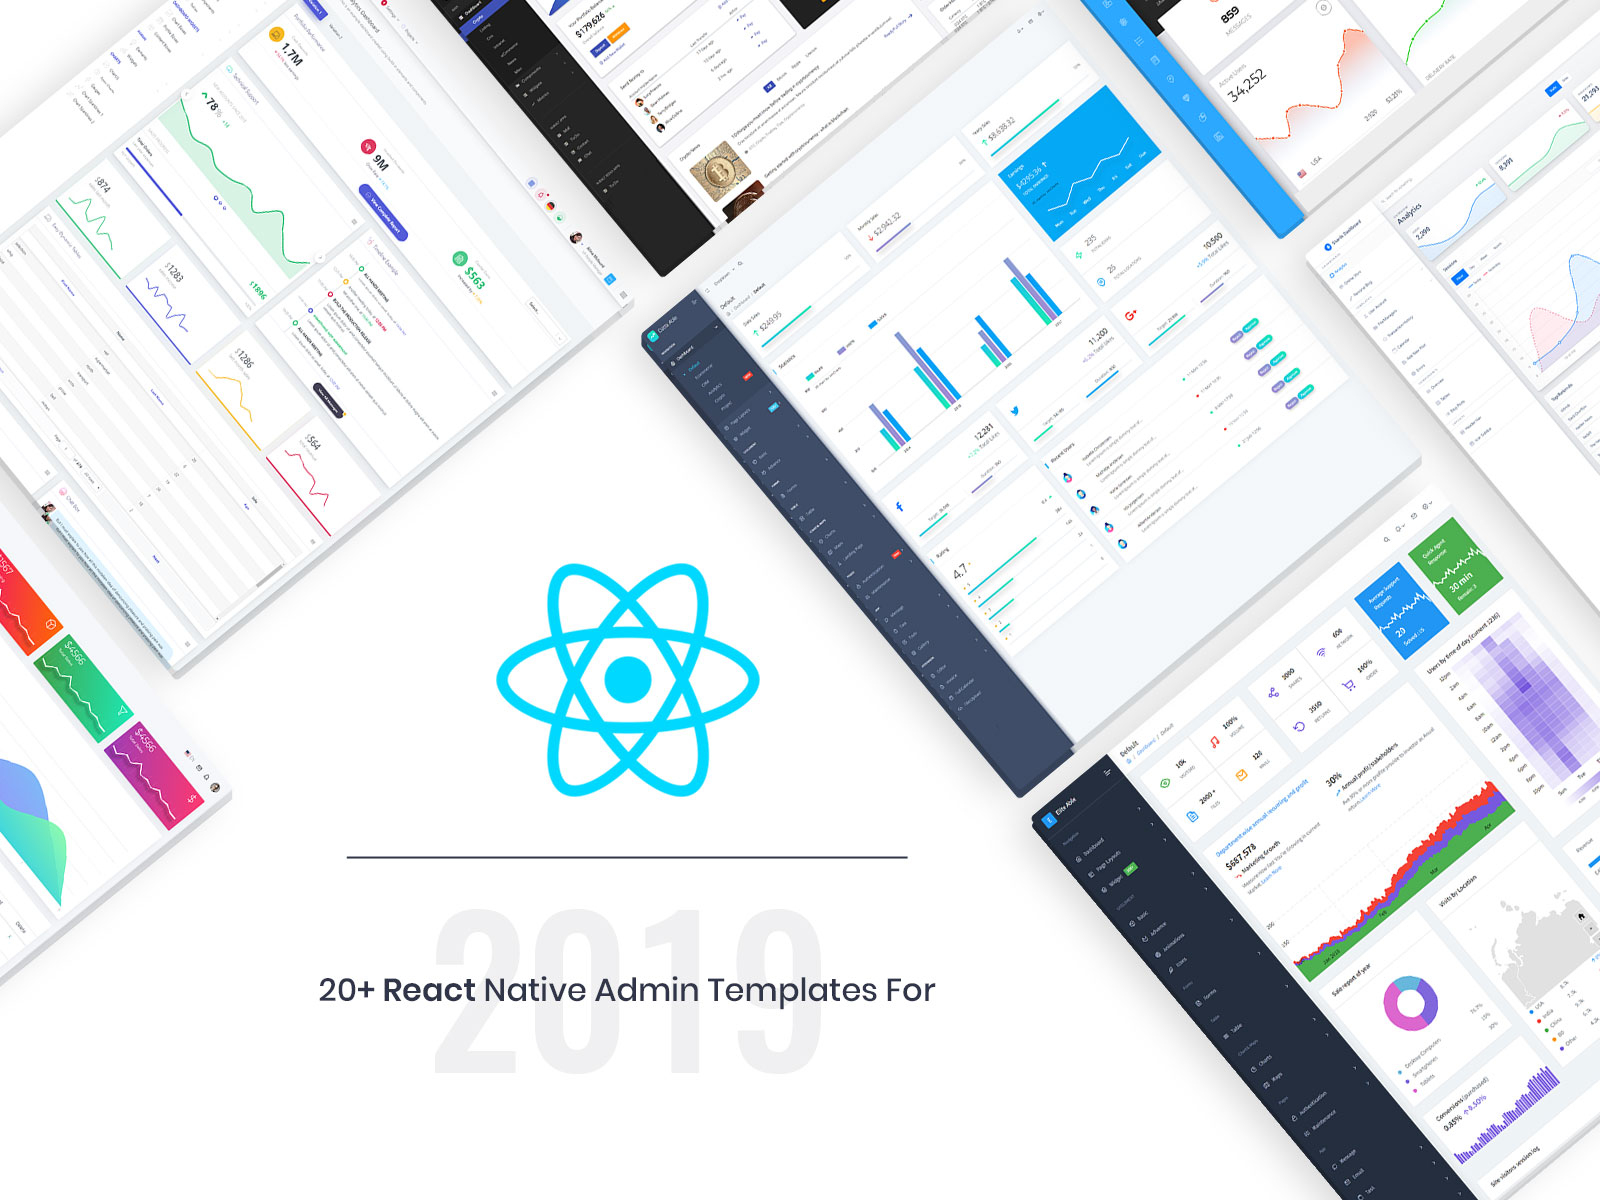 React Native Admin Templates for 2019